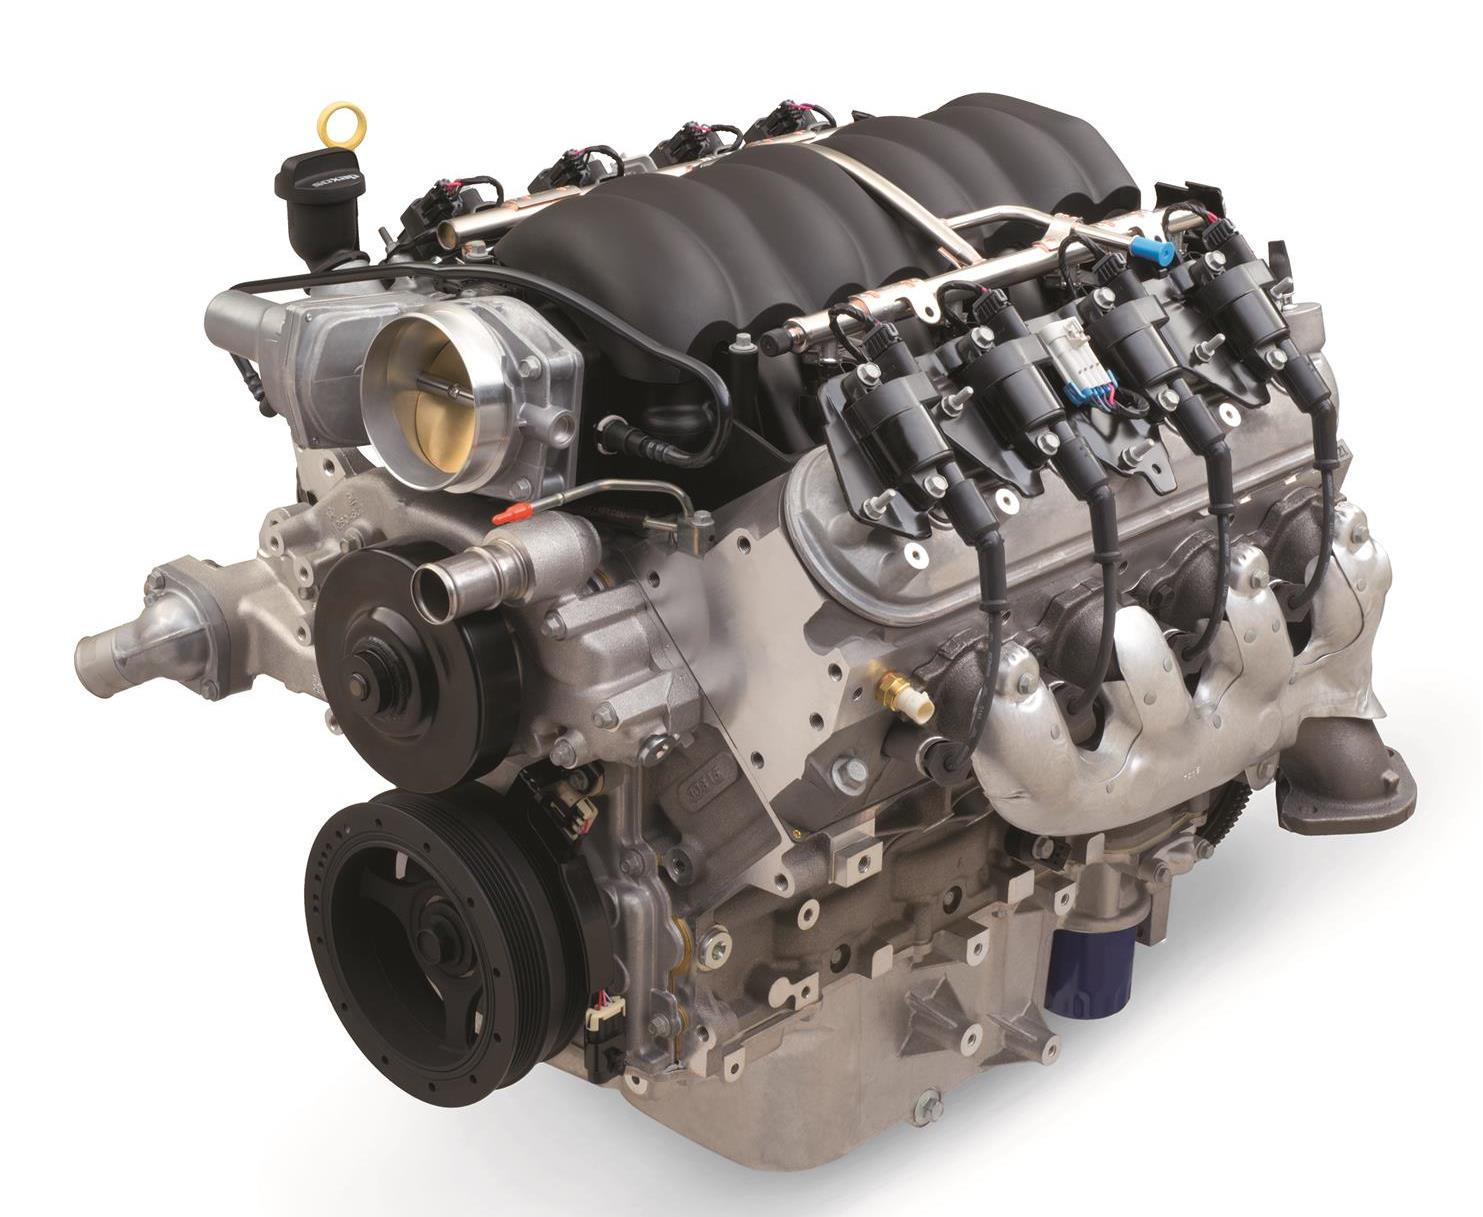 Chevrolet Performance Ls3 6 2l 376 C I D 430 Hp Engine Emblies